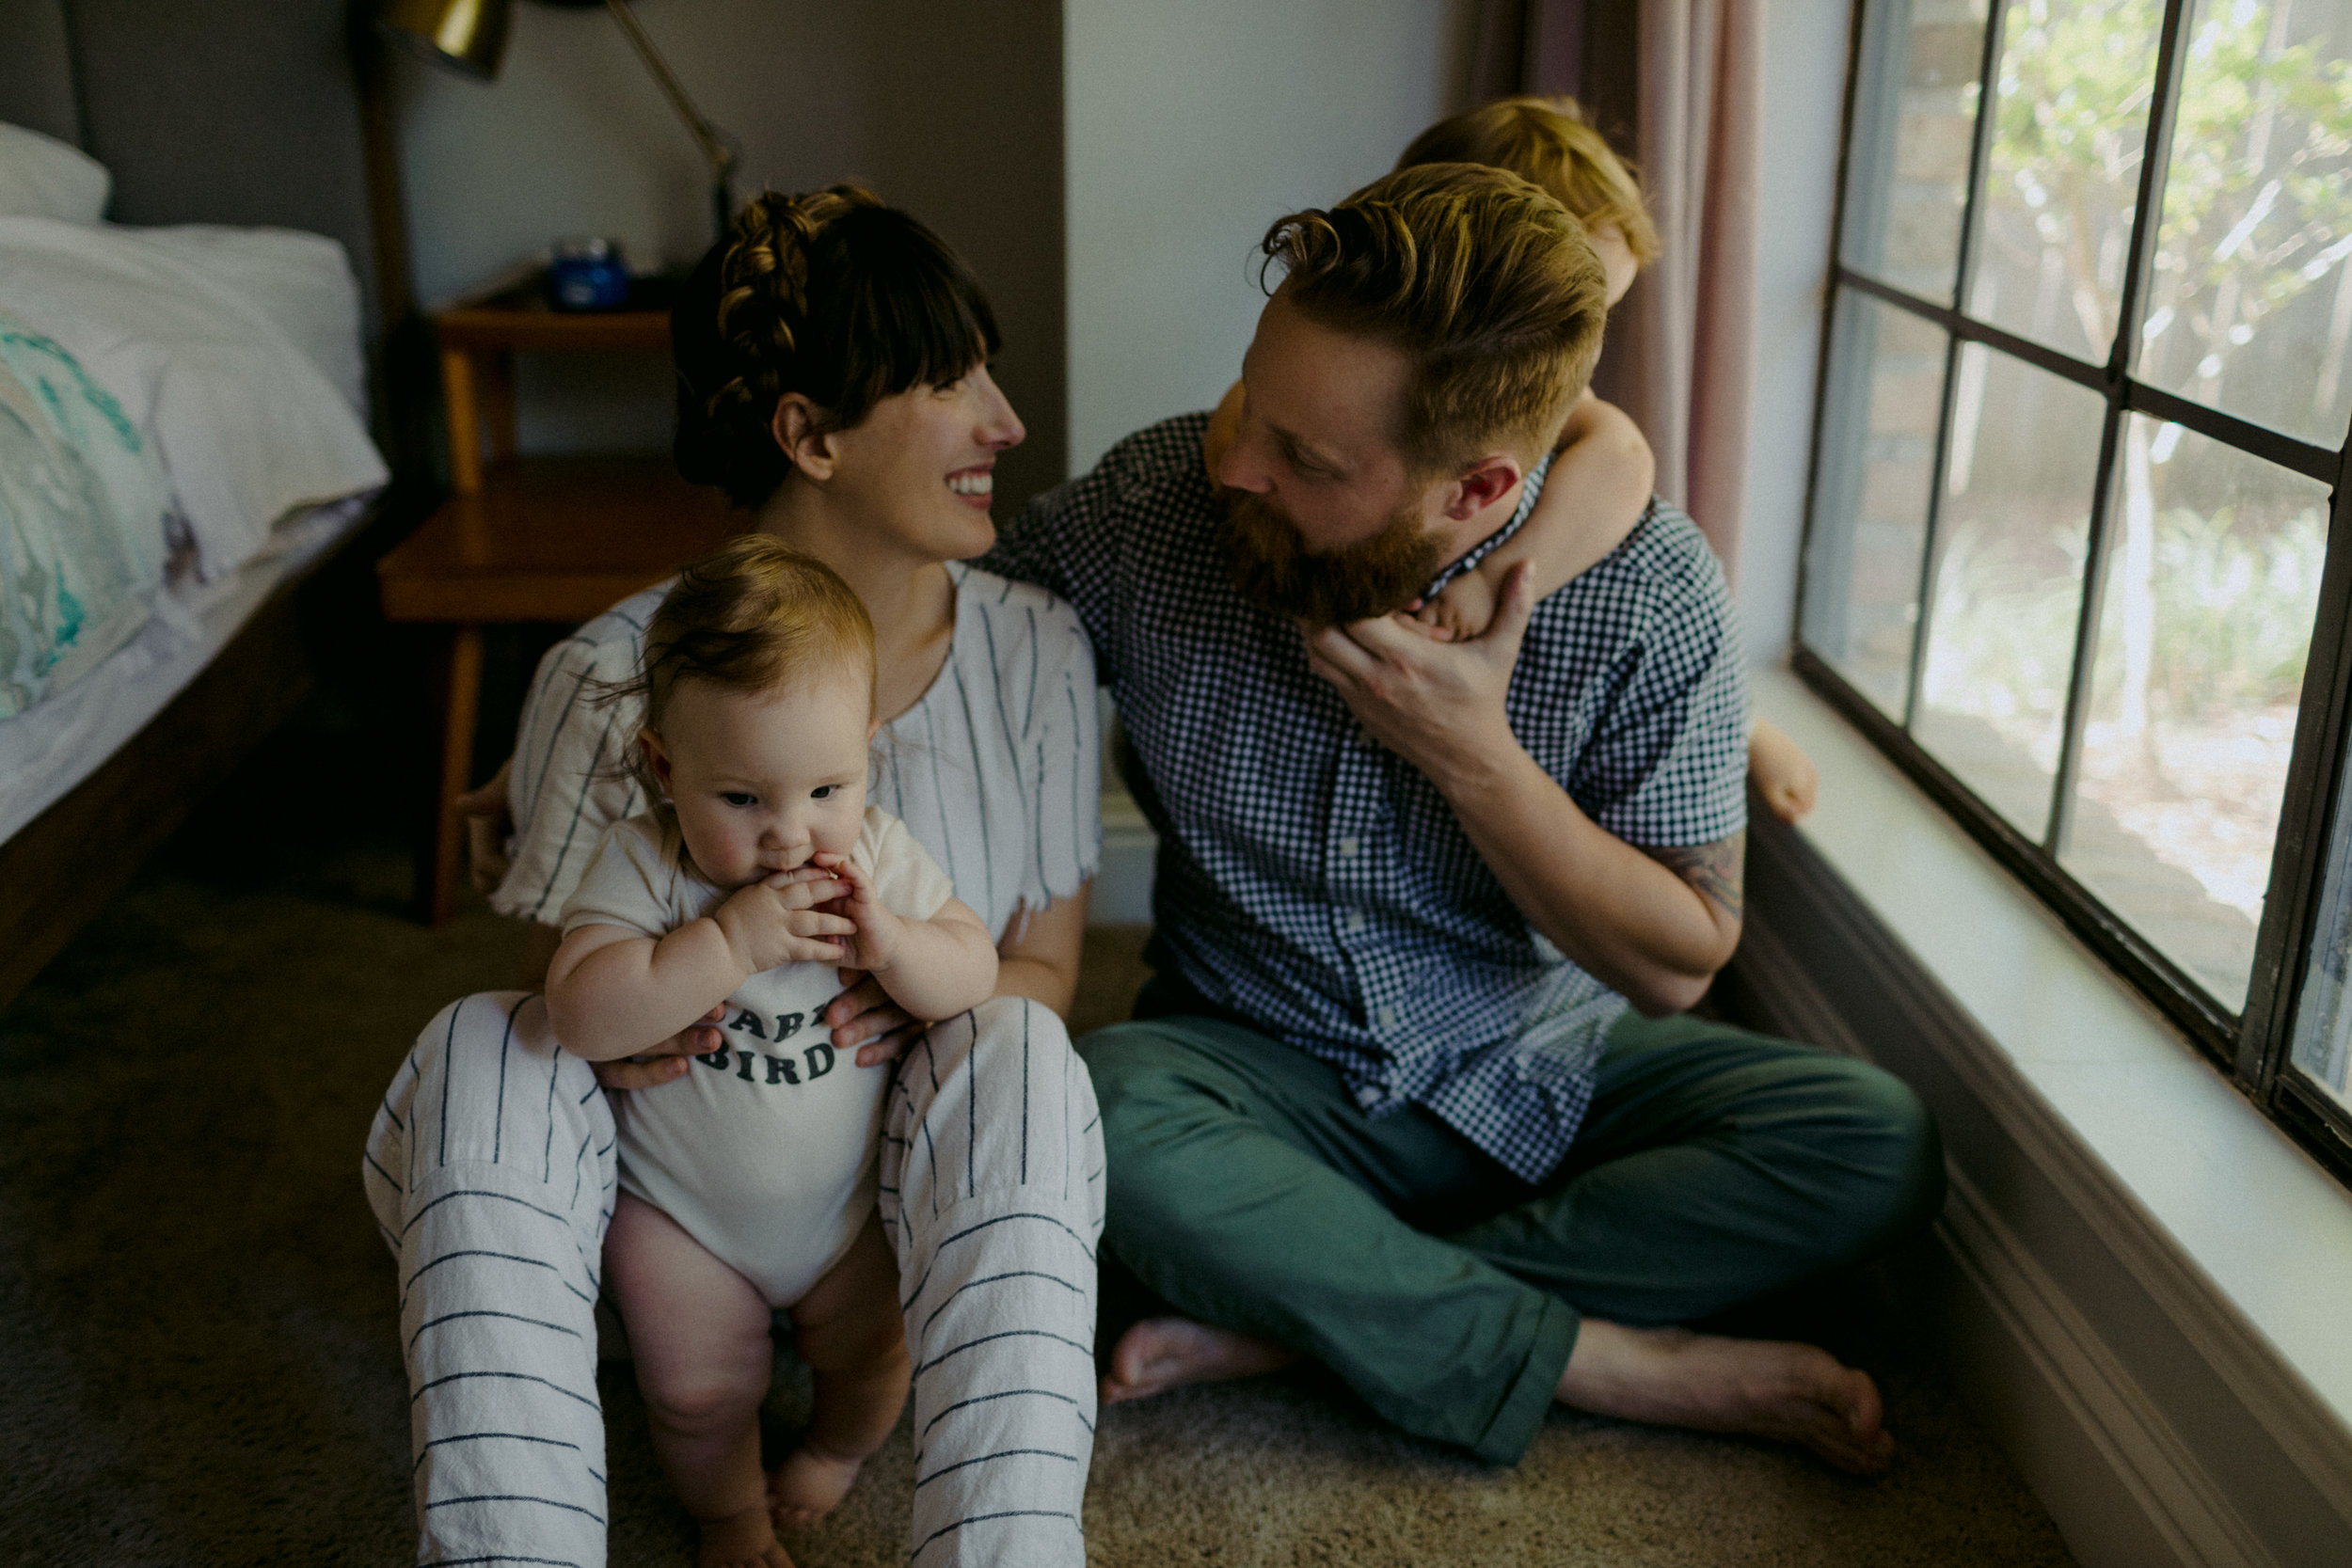 family session-sharon pye photography-231.jpg